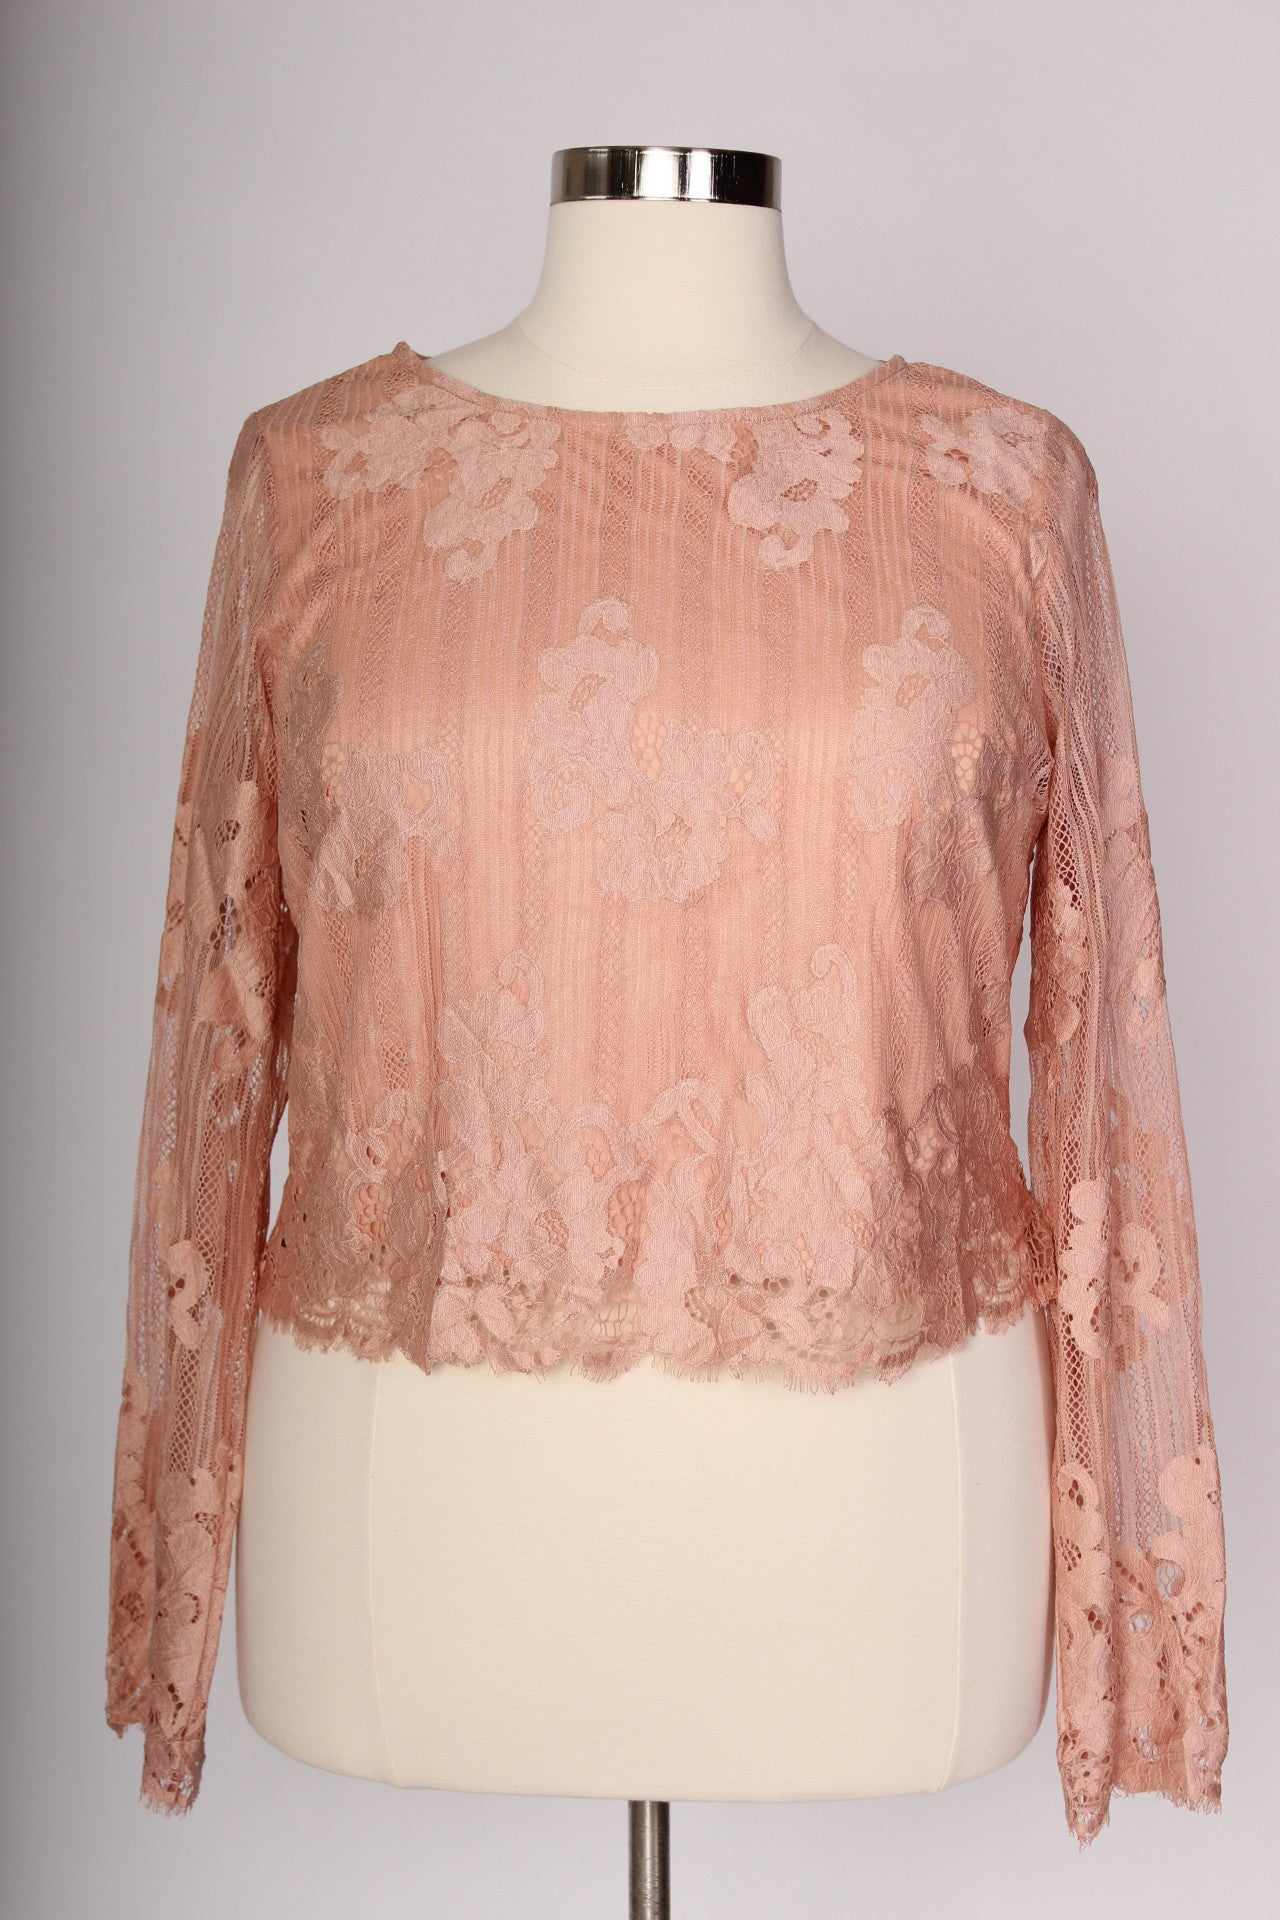 The perfect addition to its matching lace skirt and just as easily paired with a tutu for some more festive vibes, this lace top is as versatile as they come. The blush color is perfect in every season and the details of the lace along with the long sleeves ooze class. Dress it up, or play it more demur, whatever you decide, we know you'll look absolutely wonderful. Fit note: the sleeve is not fitted and has room if you're looking for wide sleeves. SHELF: 90% Polyester, 10% Nylon LINING: 100% Polyester Hand wash cold Hang dry Imported Front length Back length Arm hole Size:12/14 20